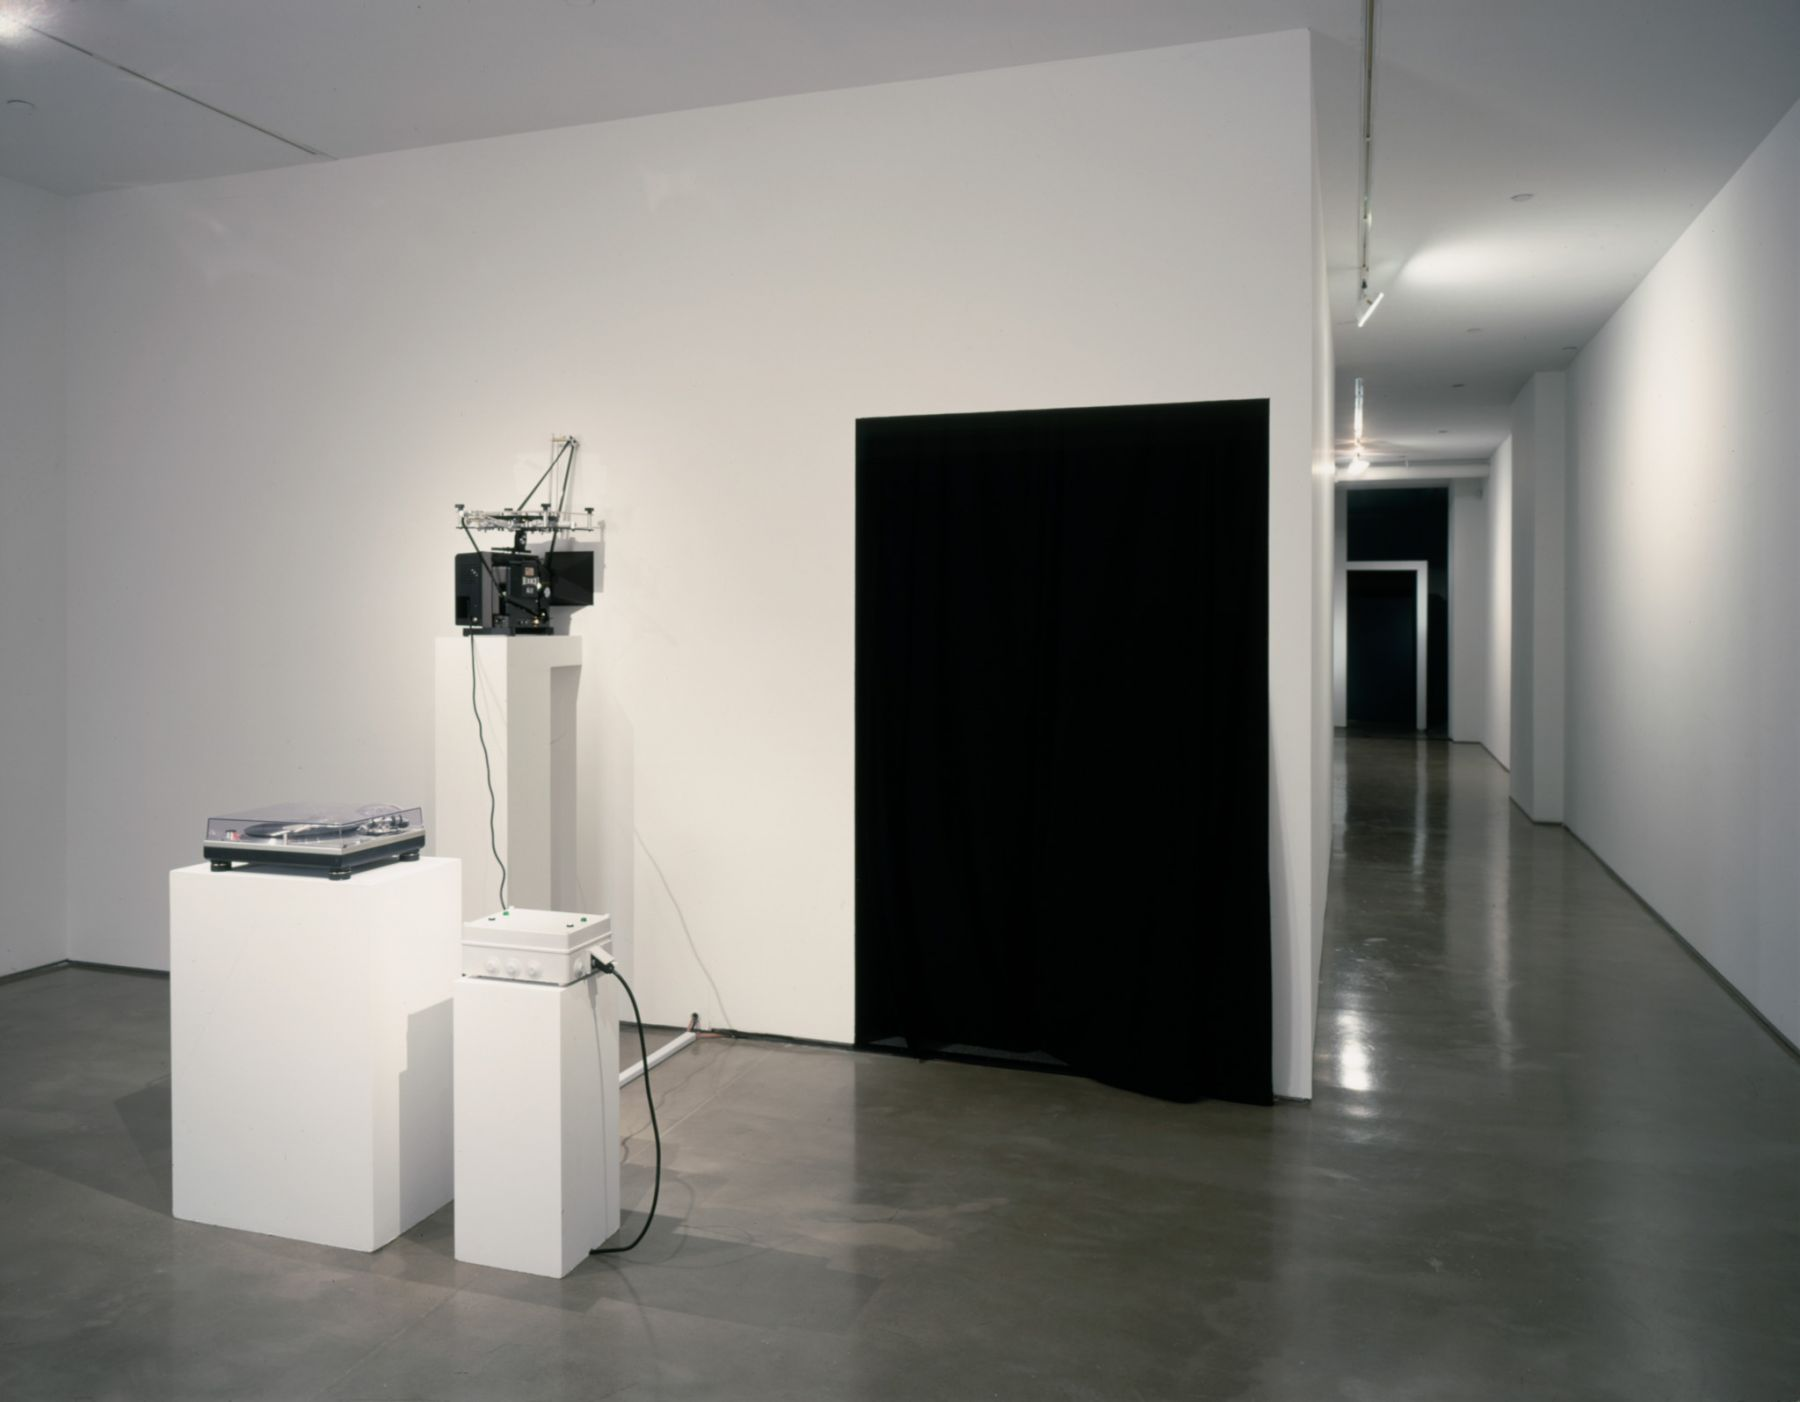 Rodney Graham, Installation view: The Phonokinetoscope, 303 Gallery, New York